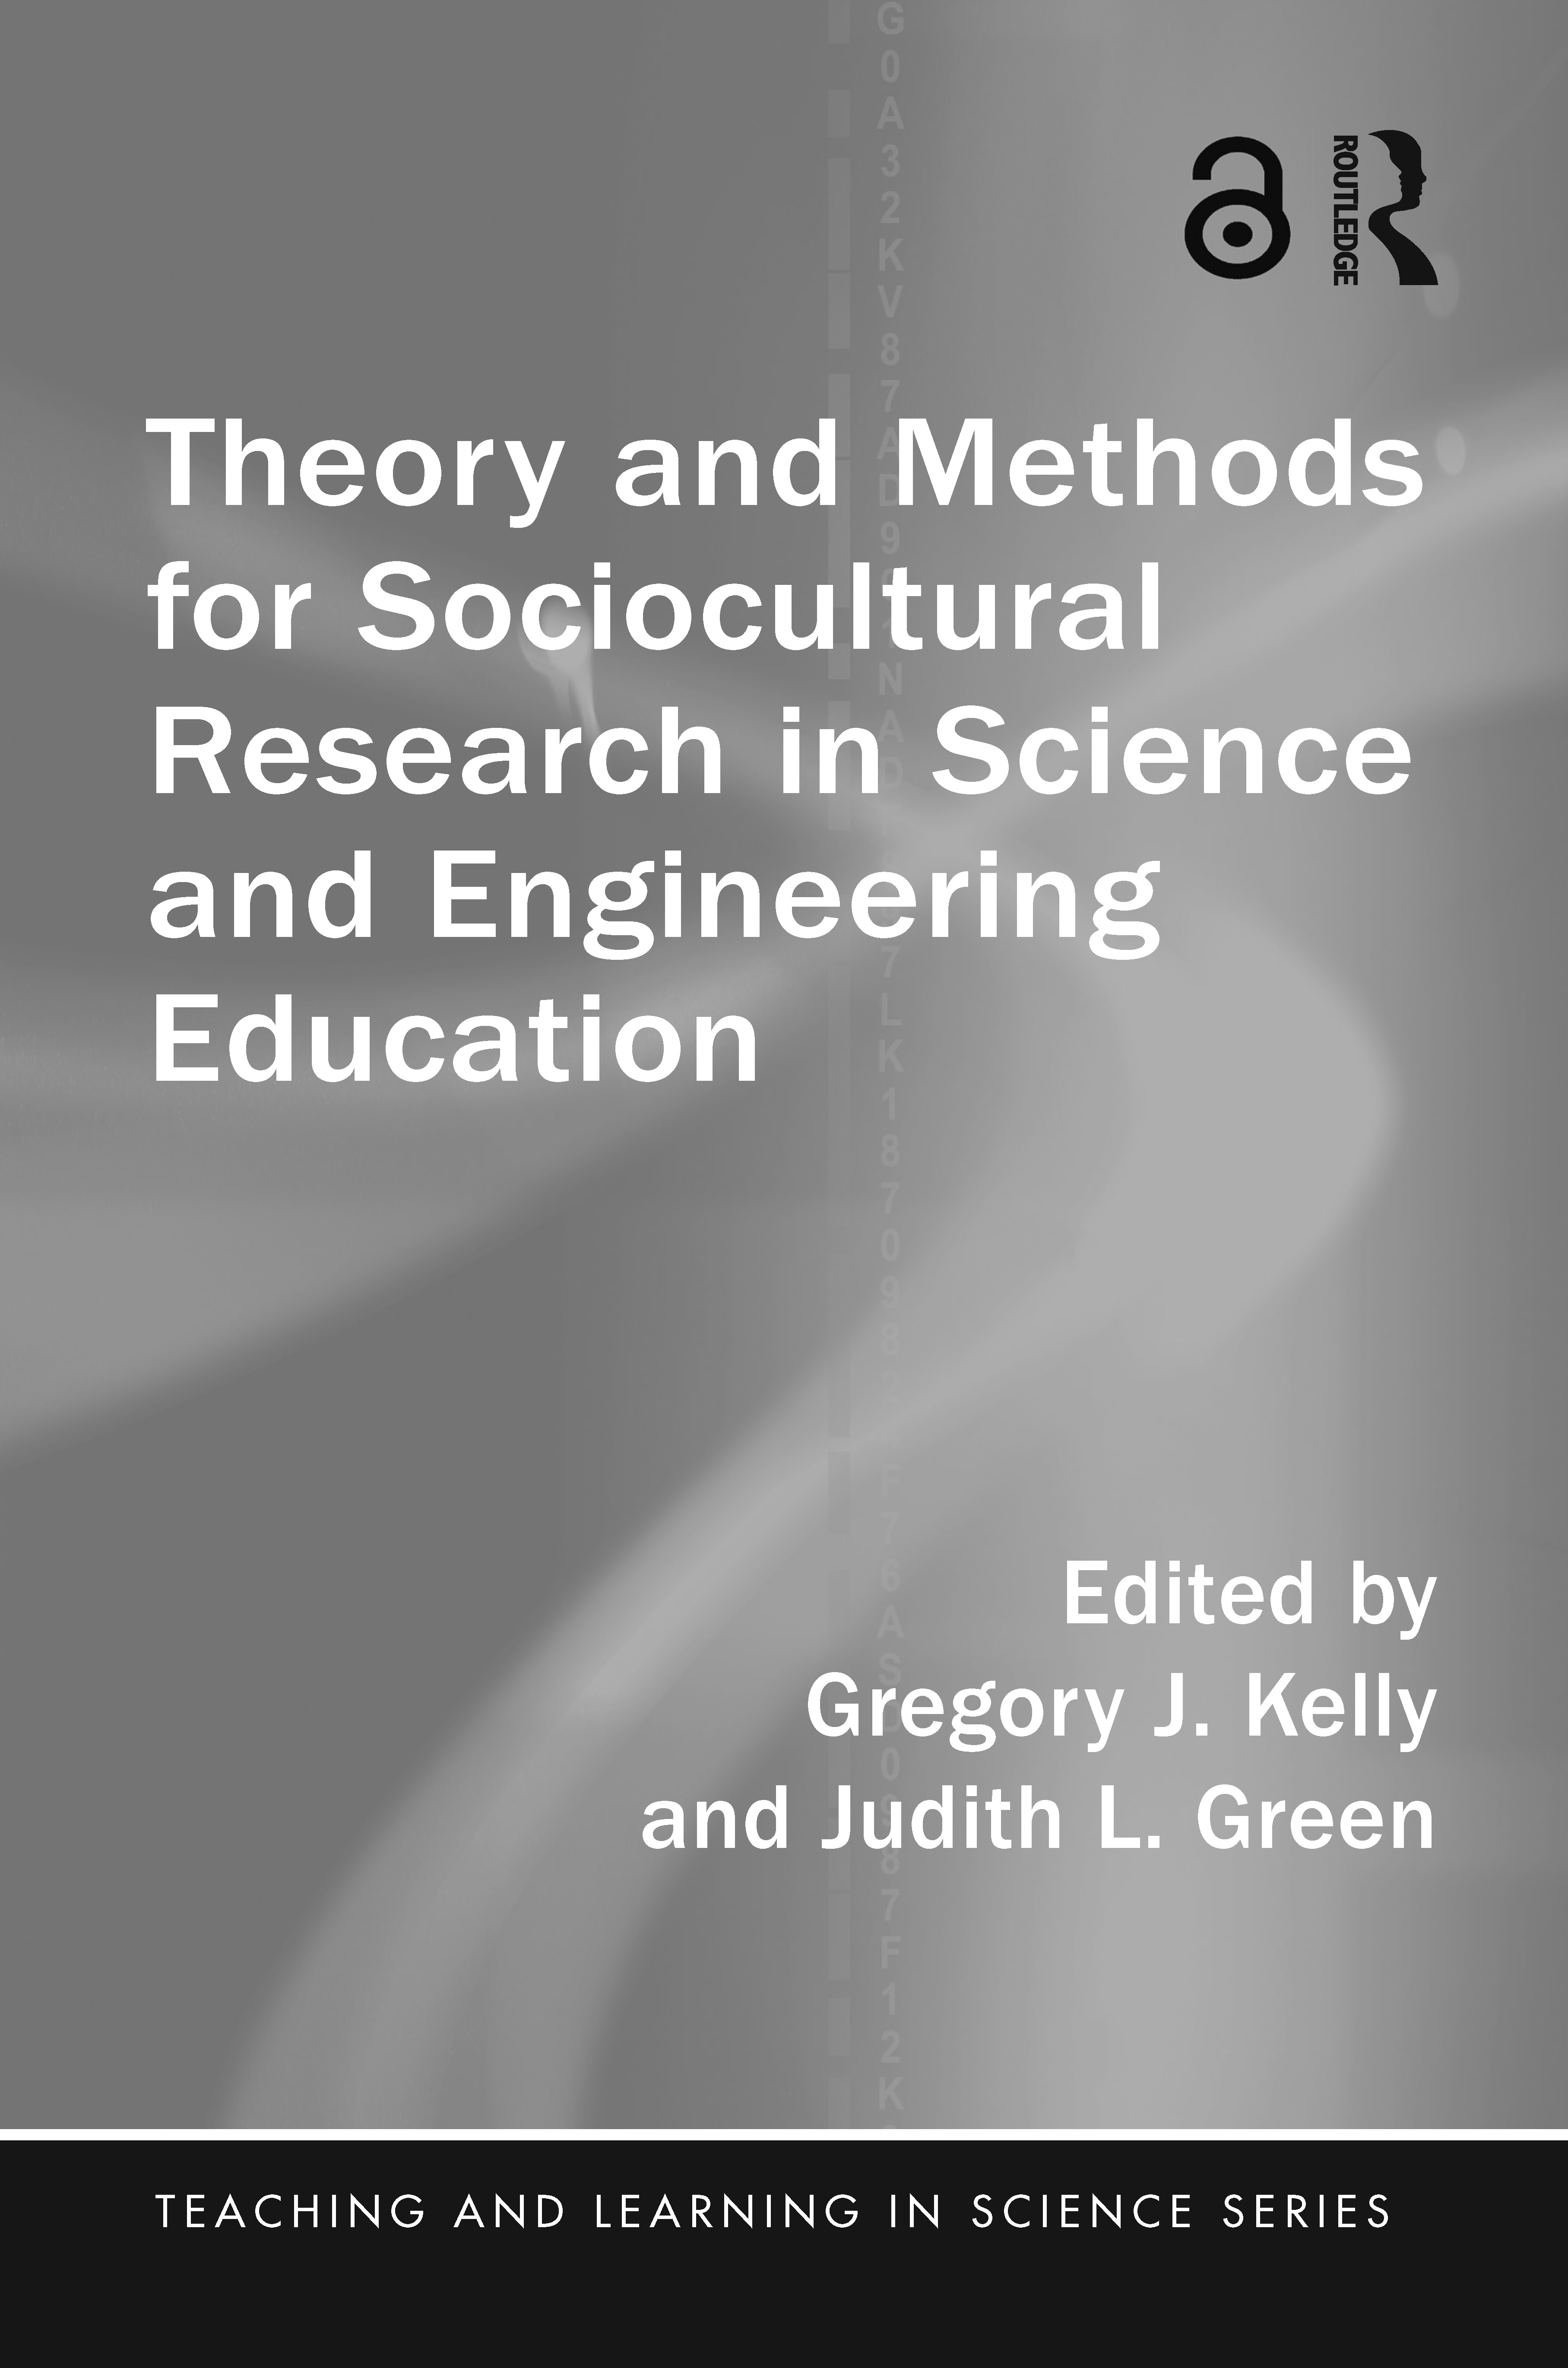 Theory and Methods for Sociocultural Research in Science and Engineering Education: 1st Edition (Paperback) book cover